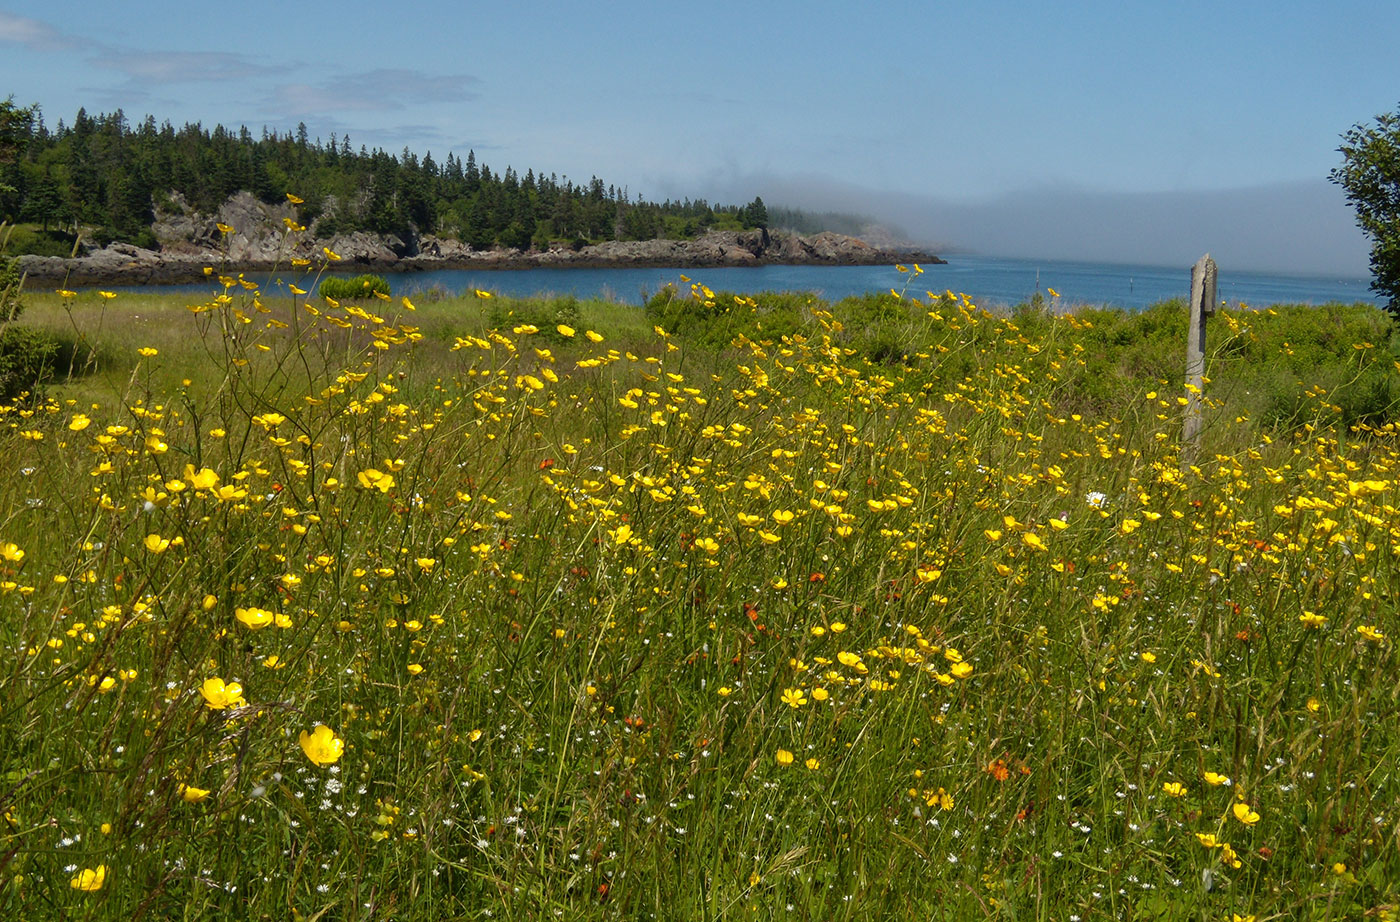 Flowers on the Bold Coast trail. Photo by Tom Meredith